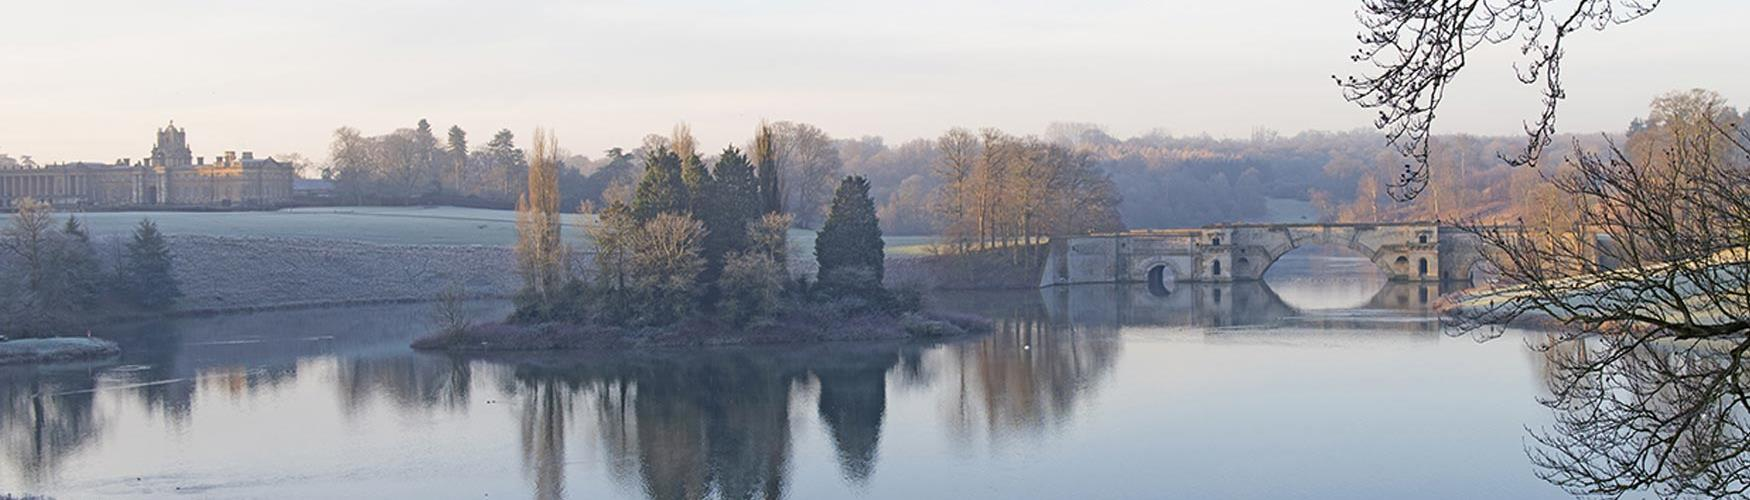 A frosty morning at Blenheim Palace